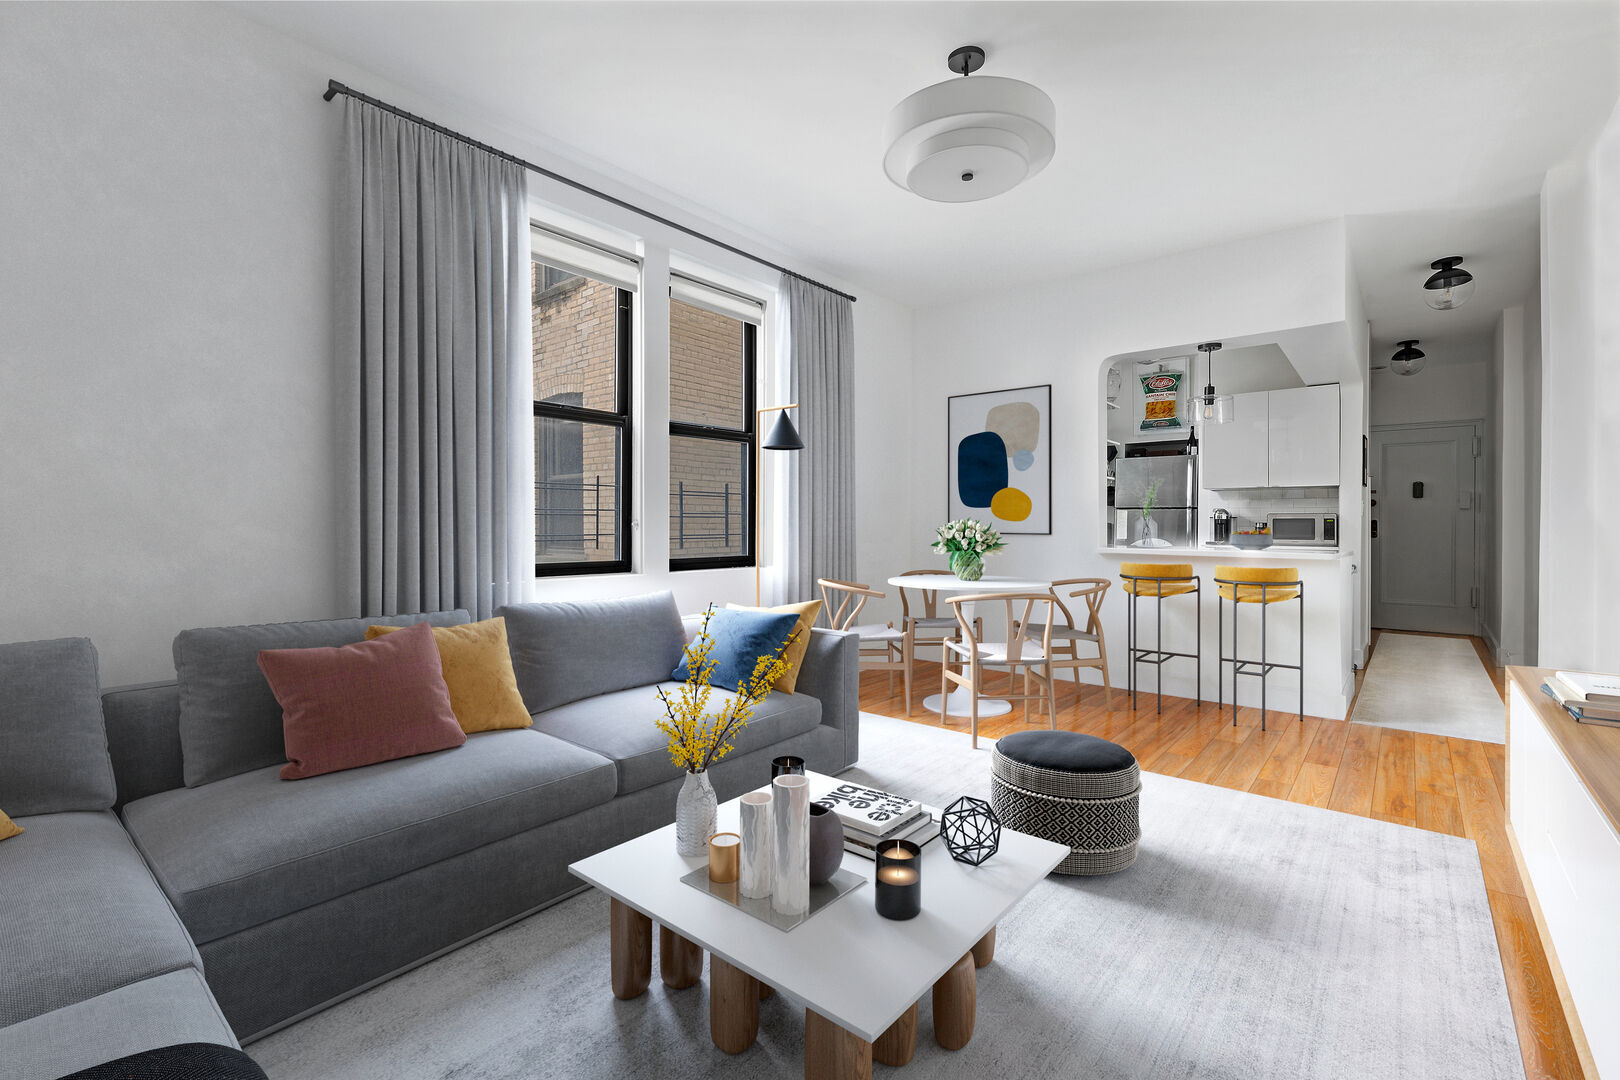 Apartment for sale at 225 Lincoln Place, Apt 4-A